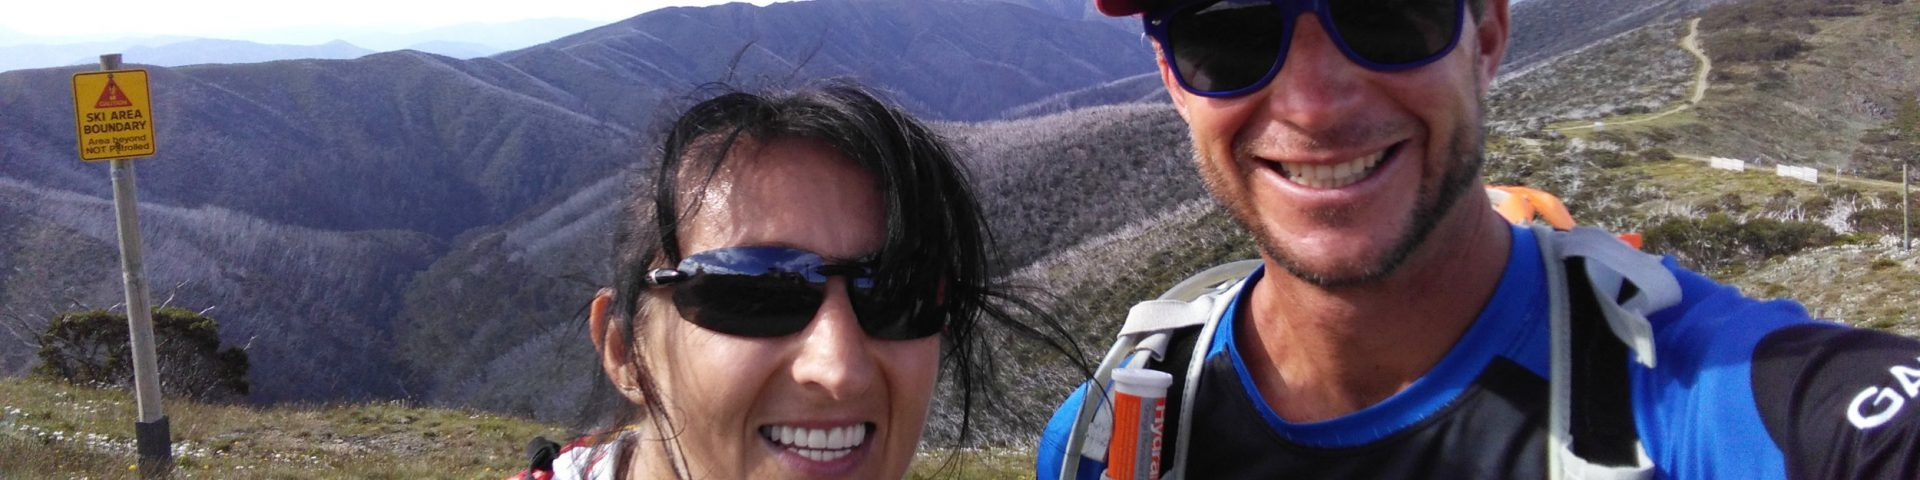 Langfords to Hotham with Dan